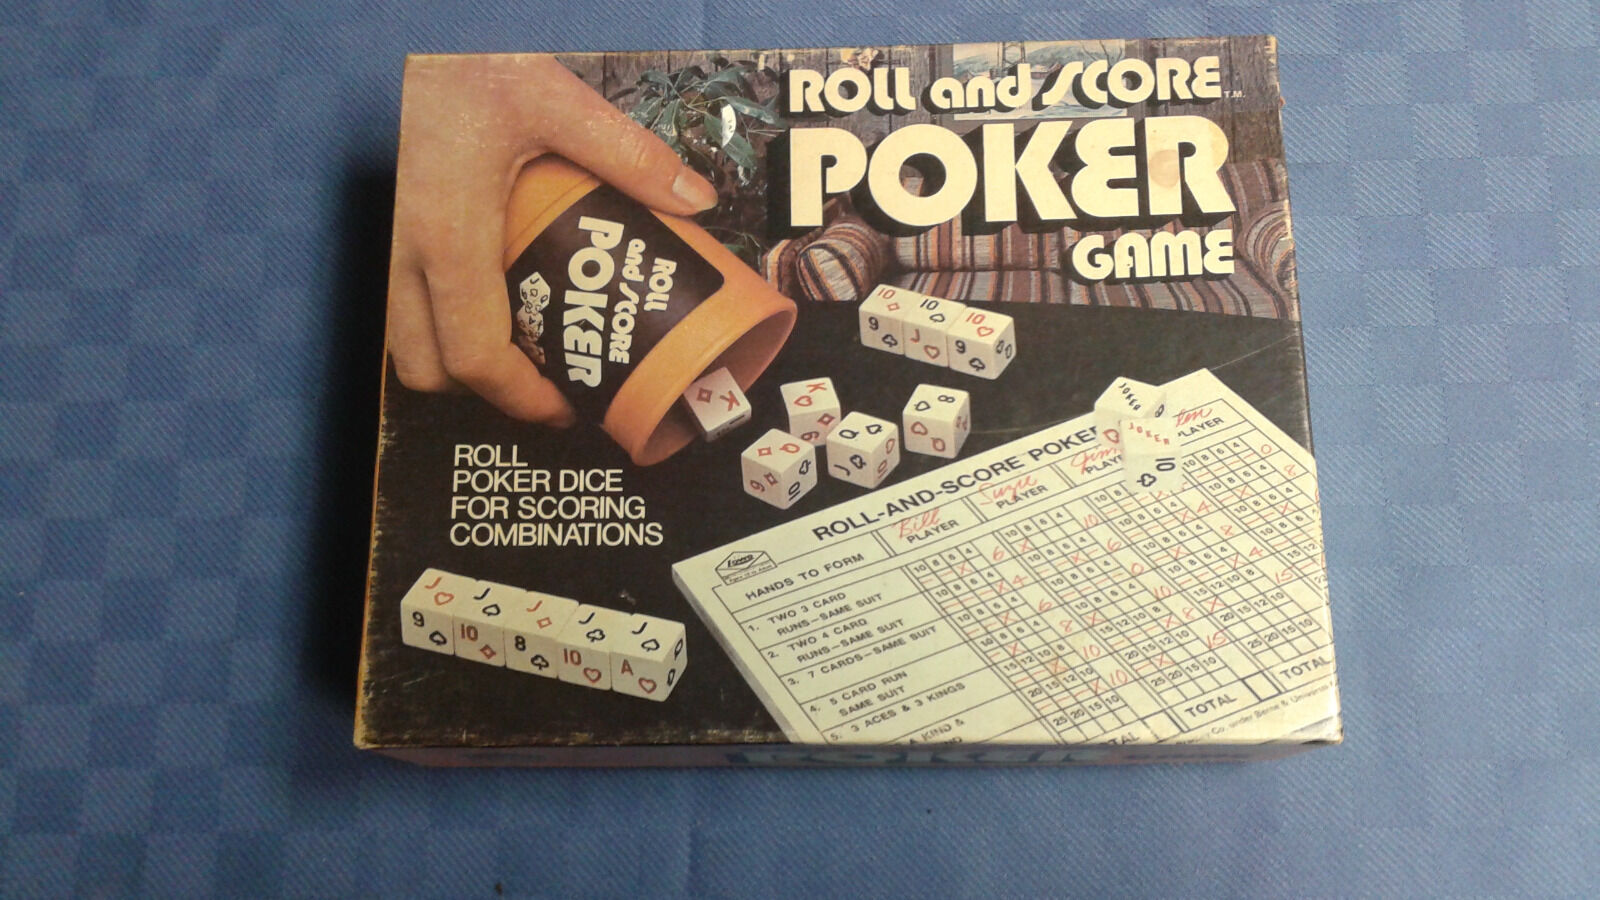 Roll and score poker best casinos paris